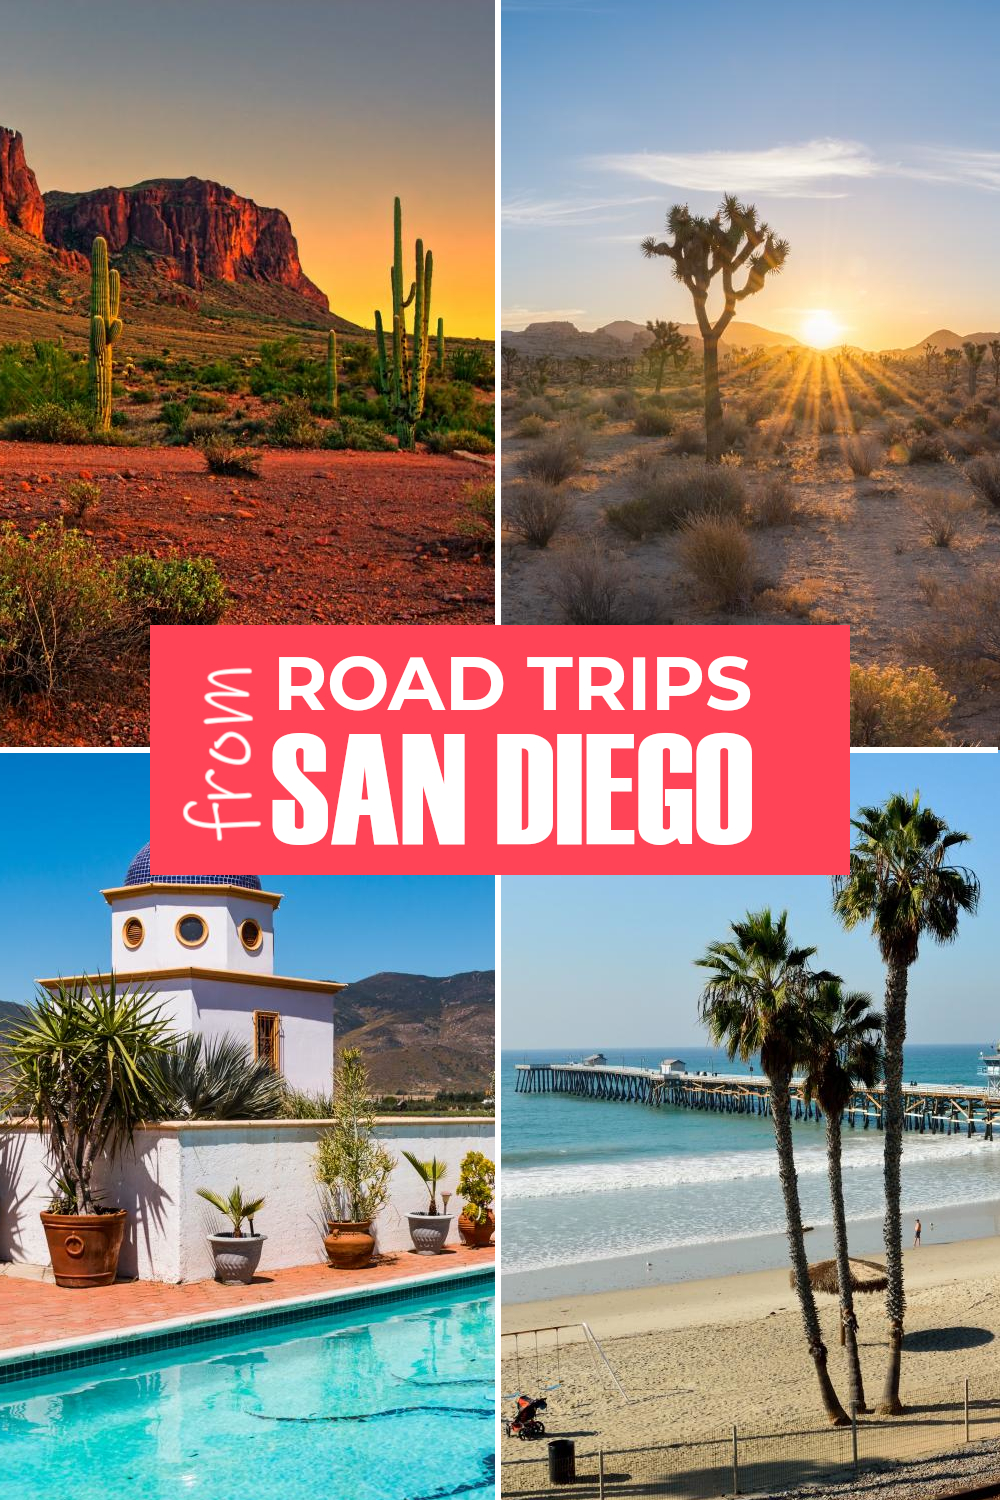 Best road trips from San Diego - from short drives in Southern California to trips to National Parks and epic journeys.